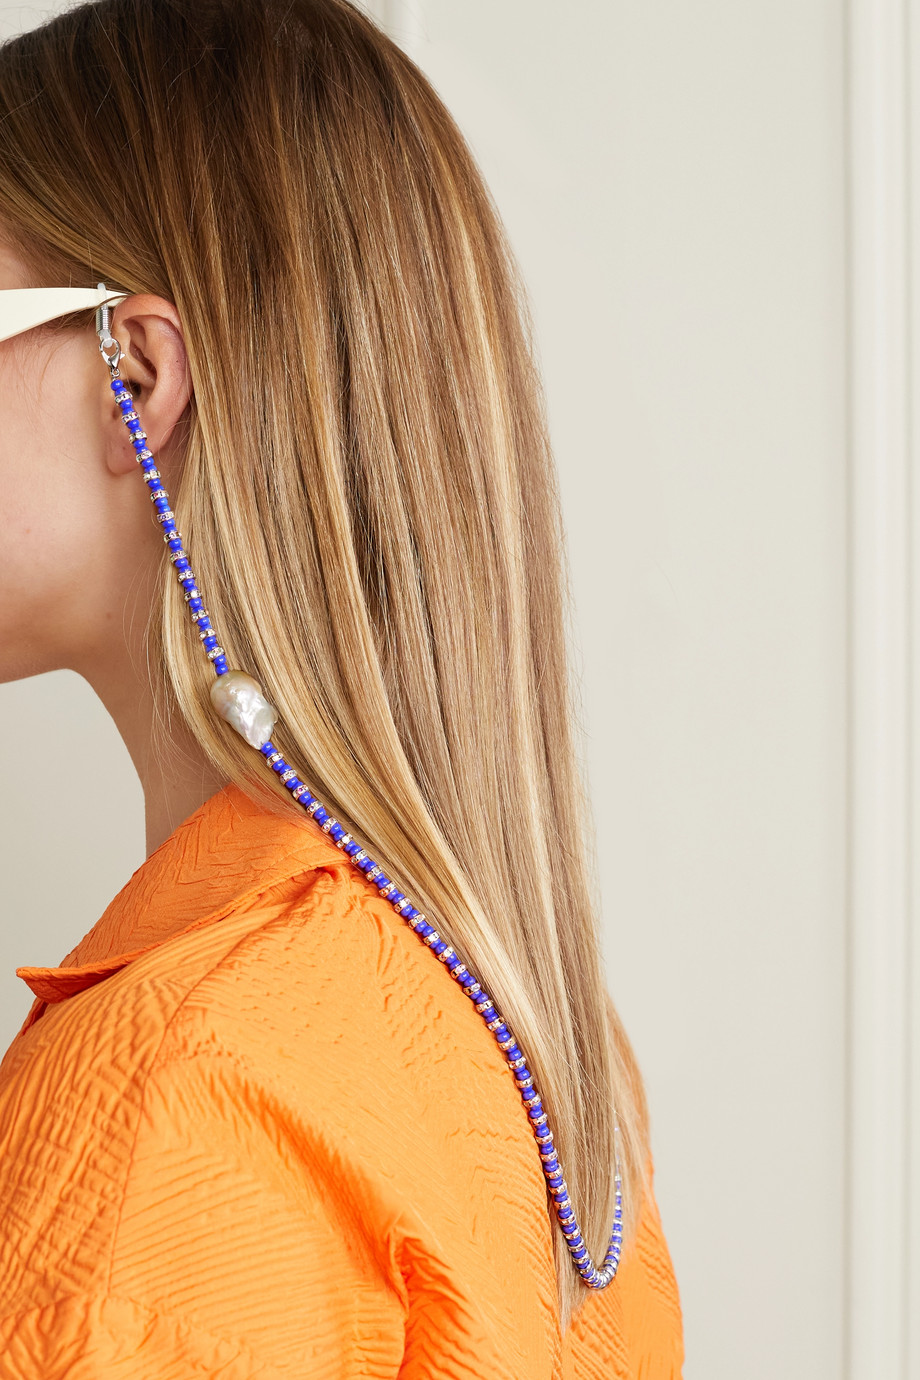 PEARL OCTOPUSS.Y Klein silver-plated multi-stone sunglasses chain